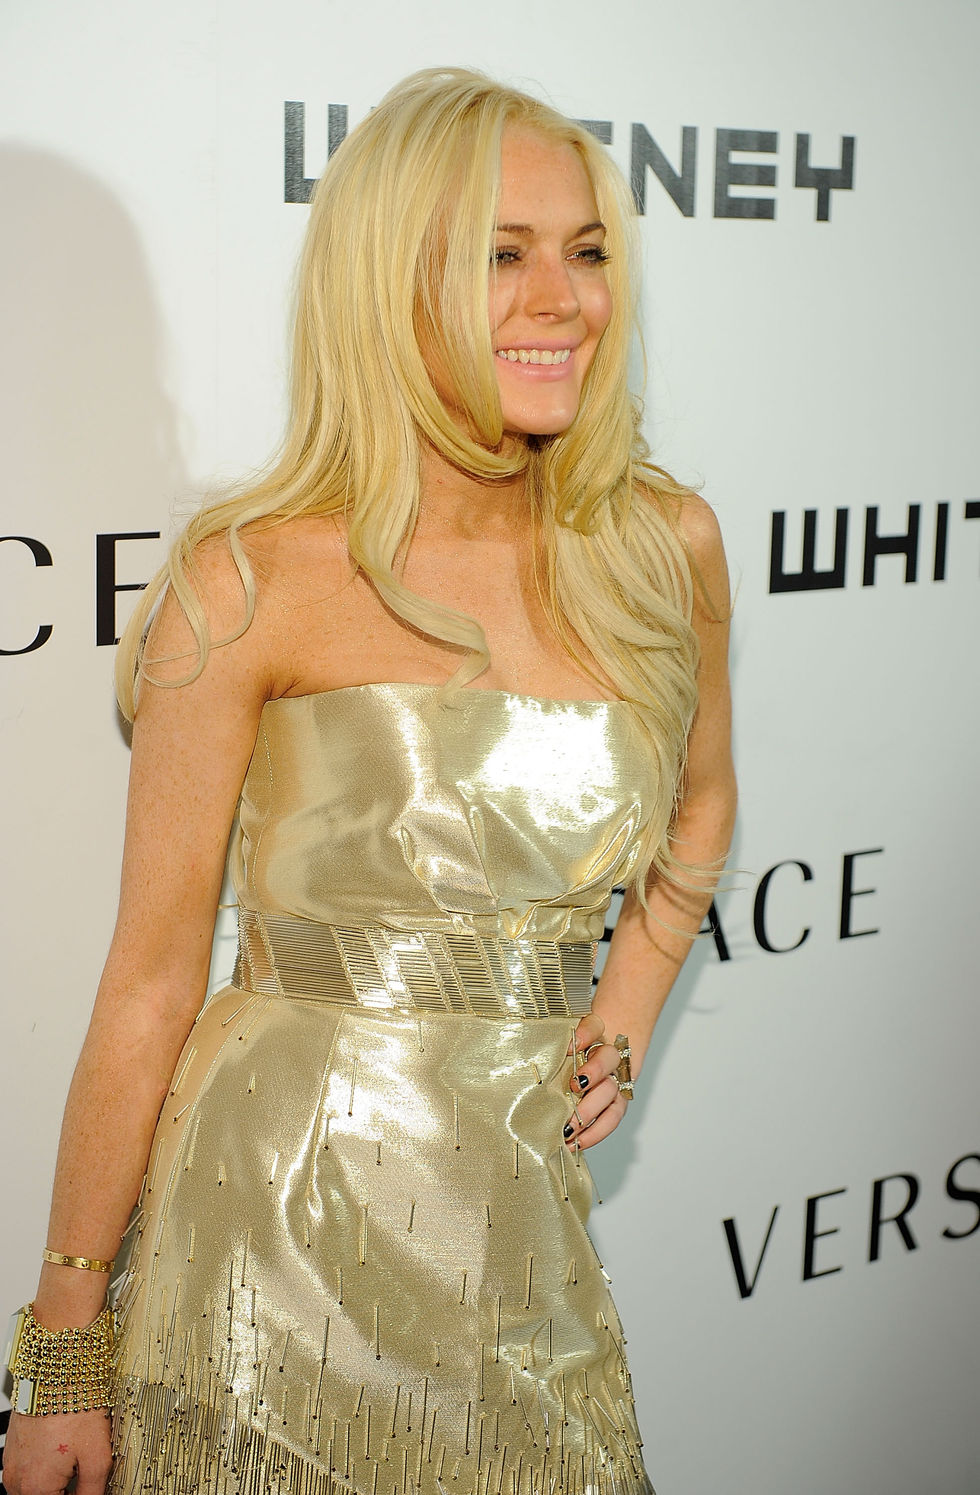 lindsay-lohan-2009-whitney-museum-gala-in-new-york-01